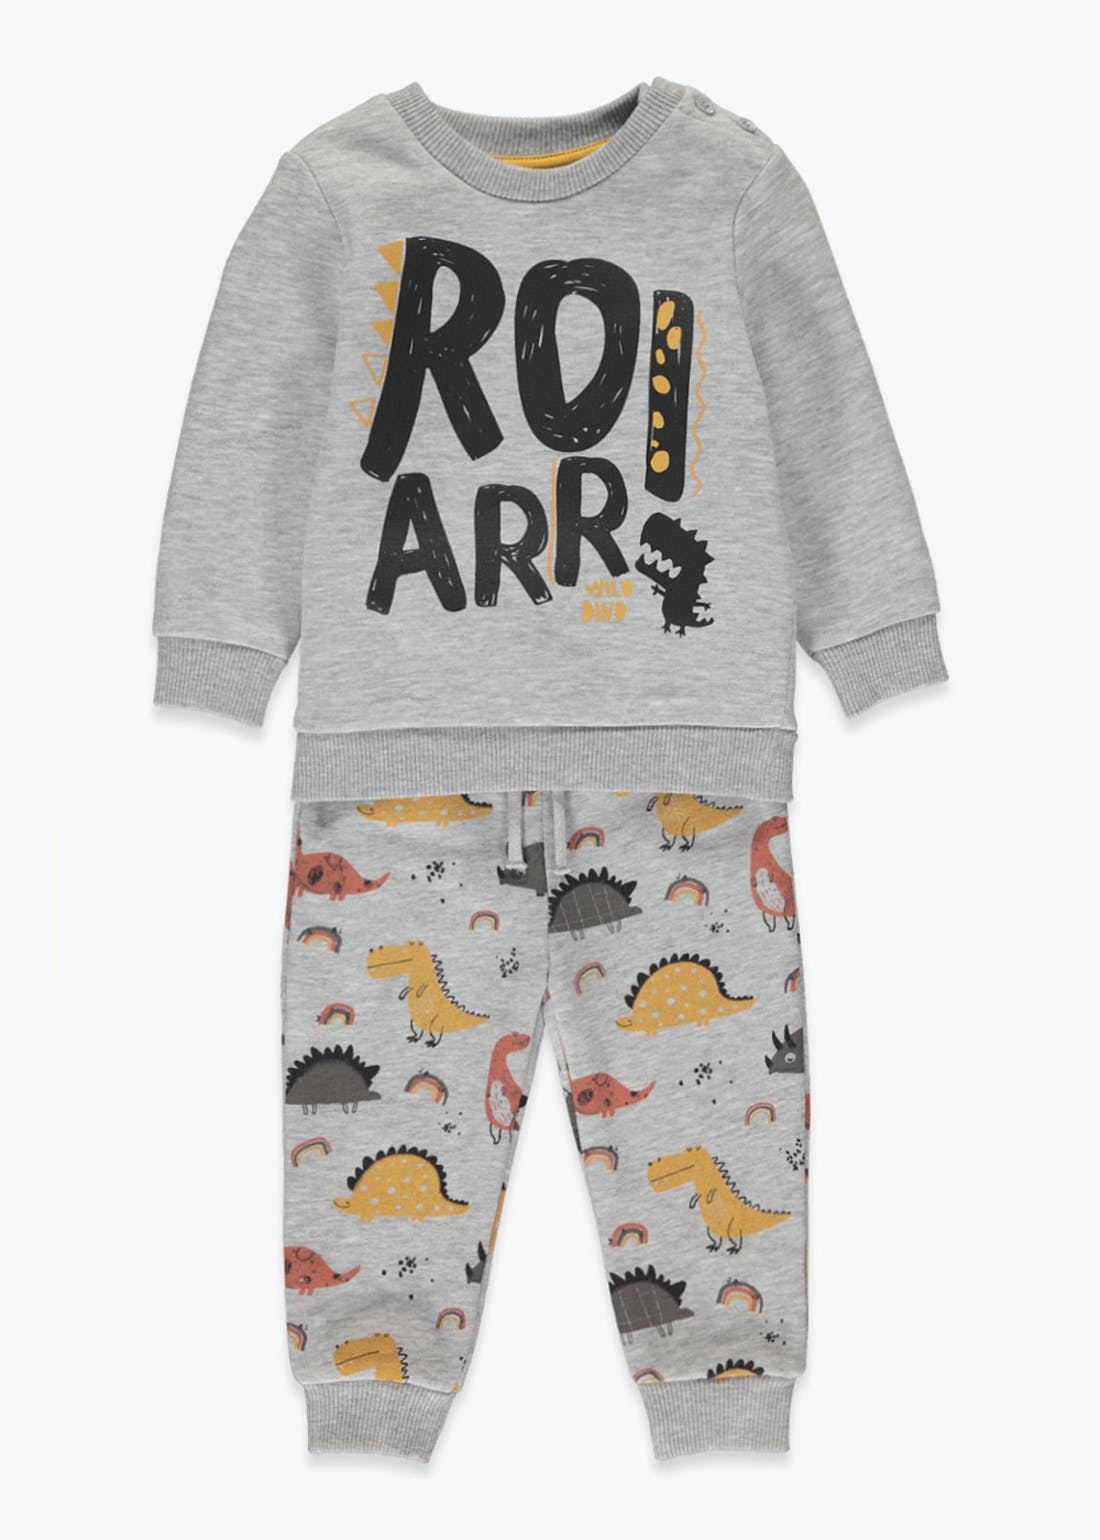 Unisex Dinosaur Sweatshirt Set (9mths-6yrs)